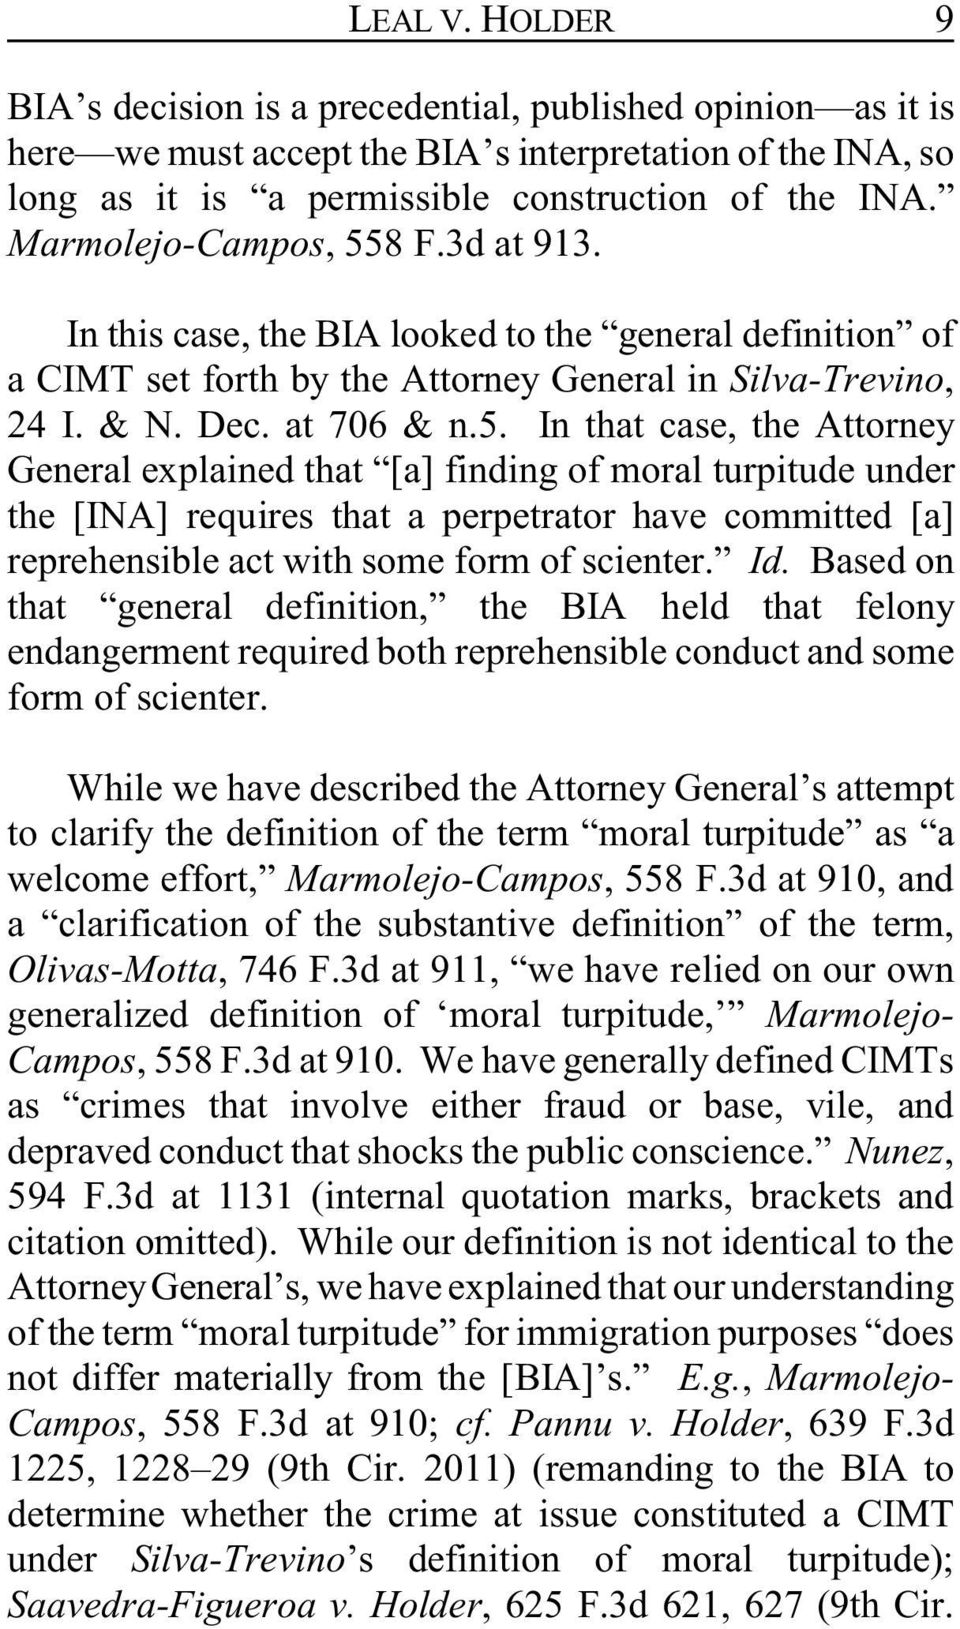 8 F.3d at 913. In this case, the BIA looked to the general definition of a CIMT set forth by the Attorney General in Silva-Trevino, 24 I. & N. Dec. at 706 & n.5.